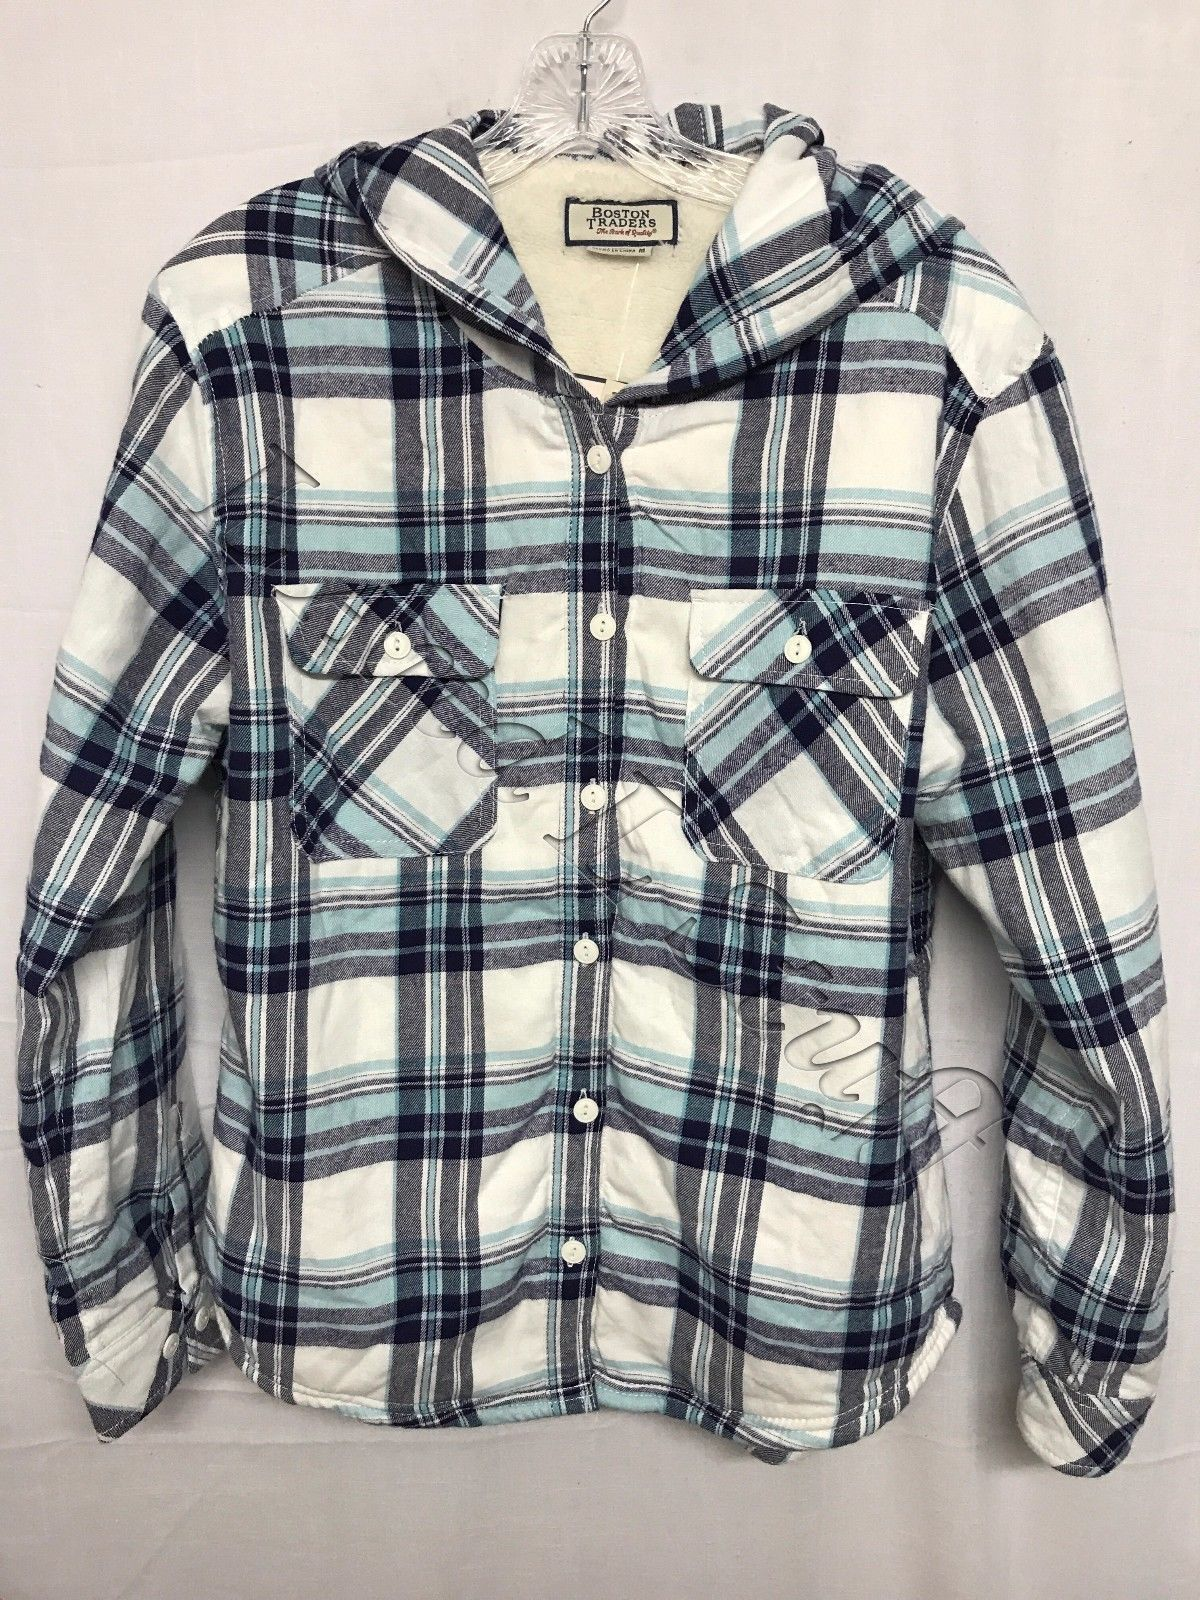 Flannel jackets with hood  Boston Traders Womenus Sherpa Lined Hooded Flannel Shirt Jacket NWOT